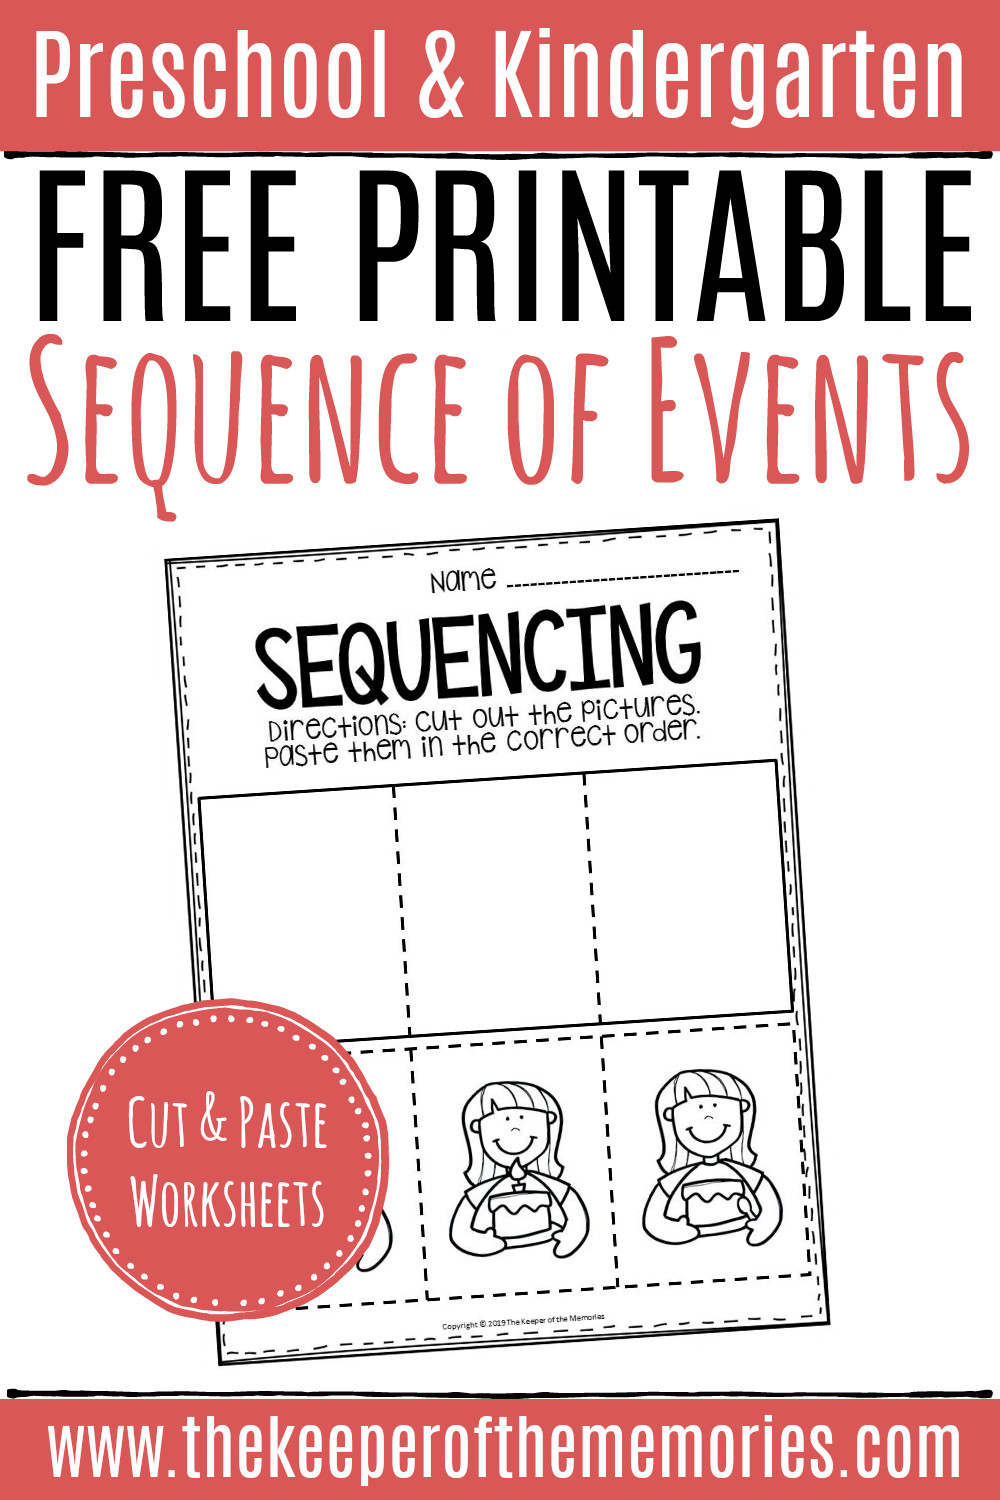 Sequencing Worksheet Kindergarten Free Printable Sequence Of events Worksheets